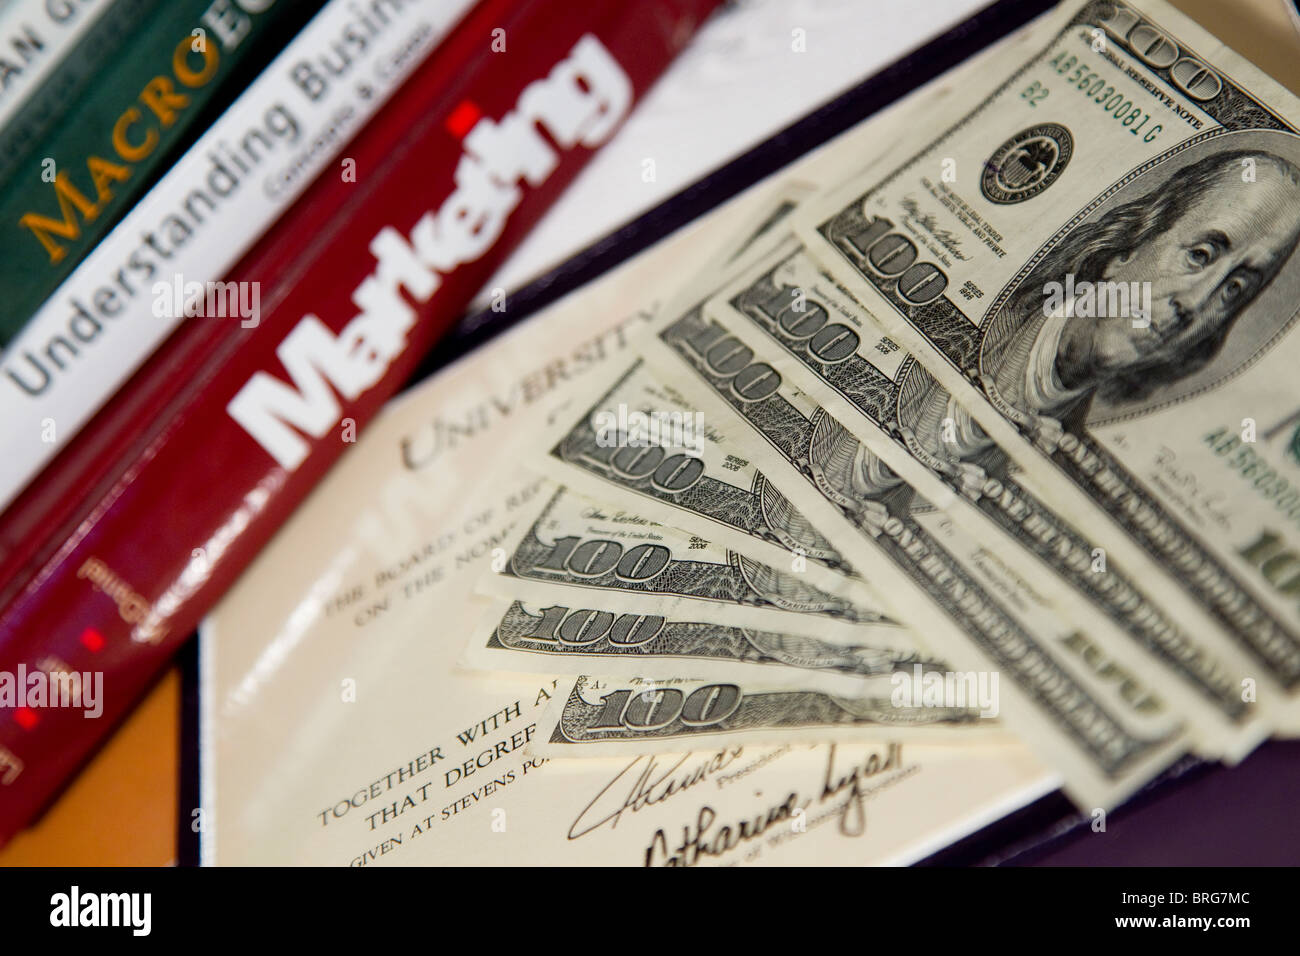 Money, textbooks and diploma, tuition and fees for college degree - Stock Image